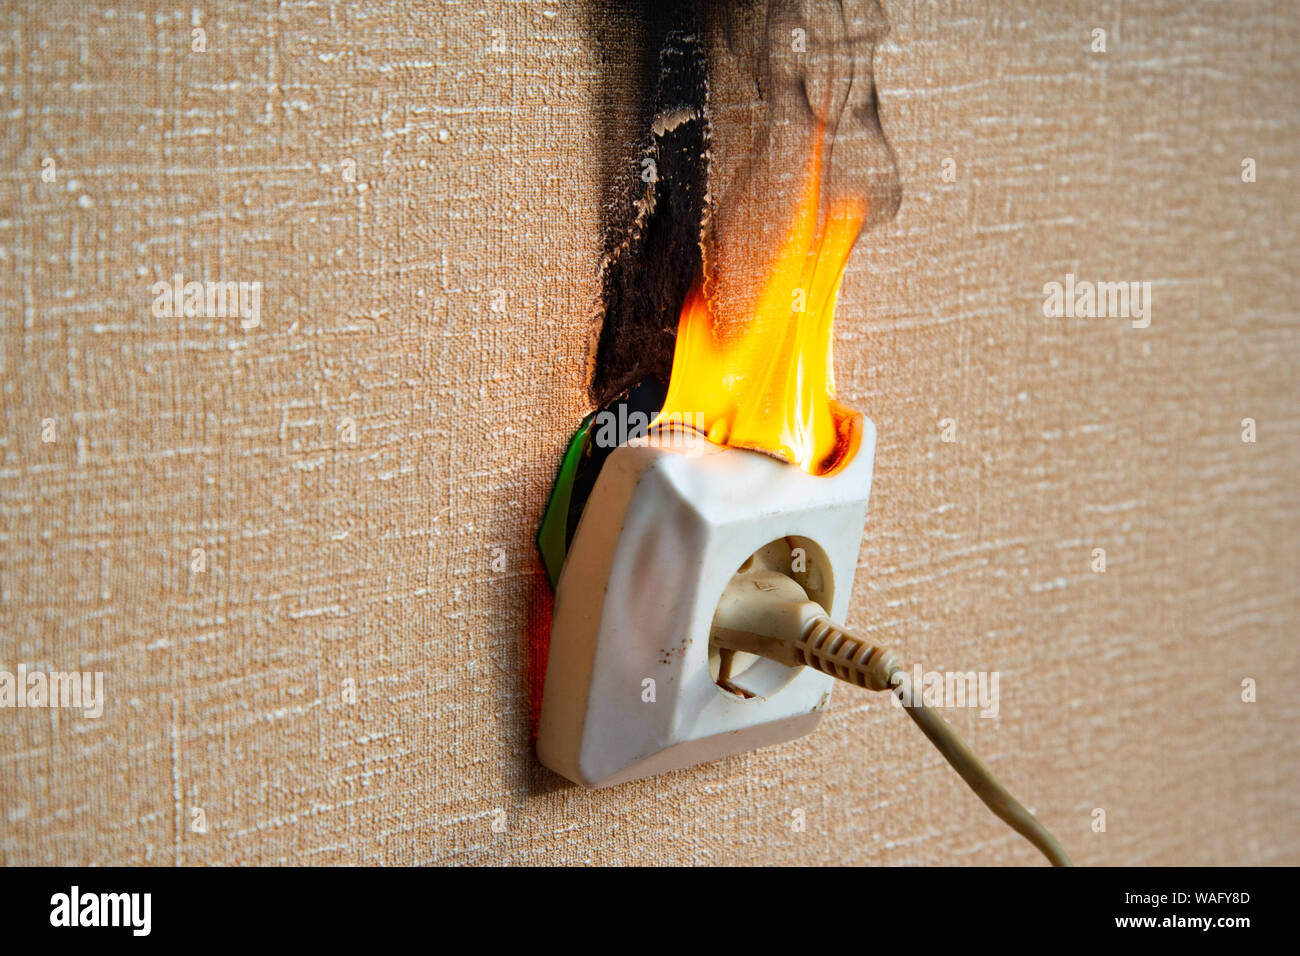 Smoke Outlet Stock Photos & Smoke Outlet Stock Images - Alamy on